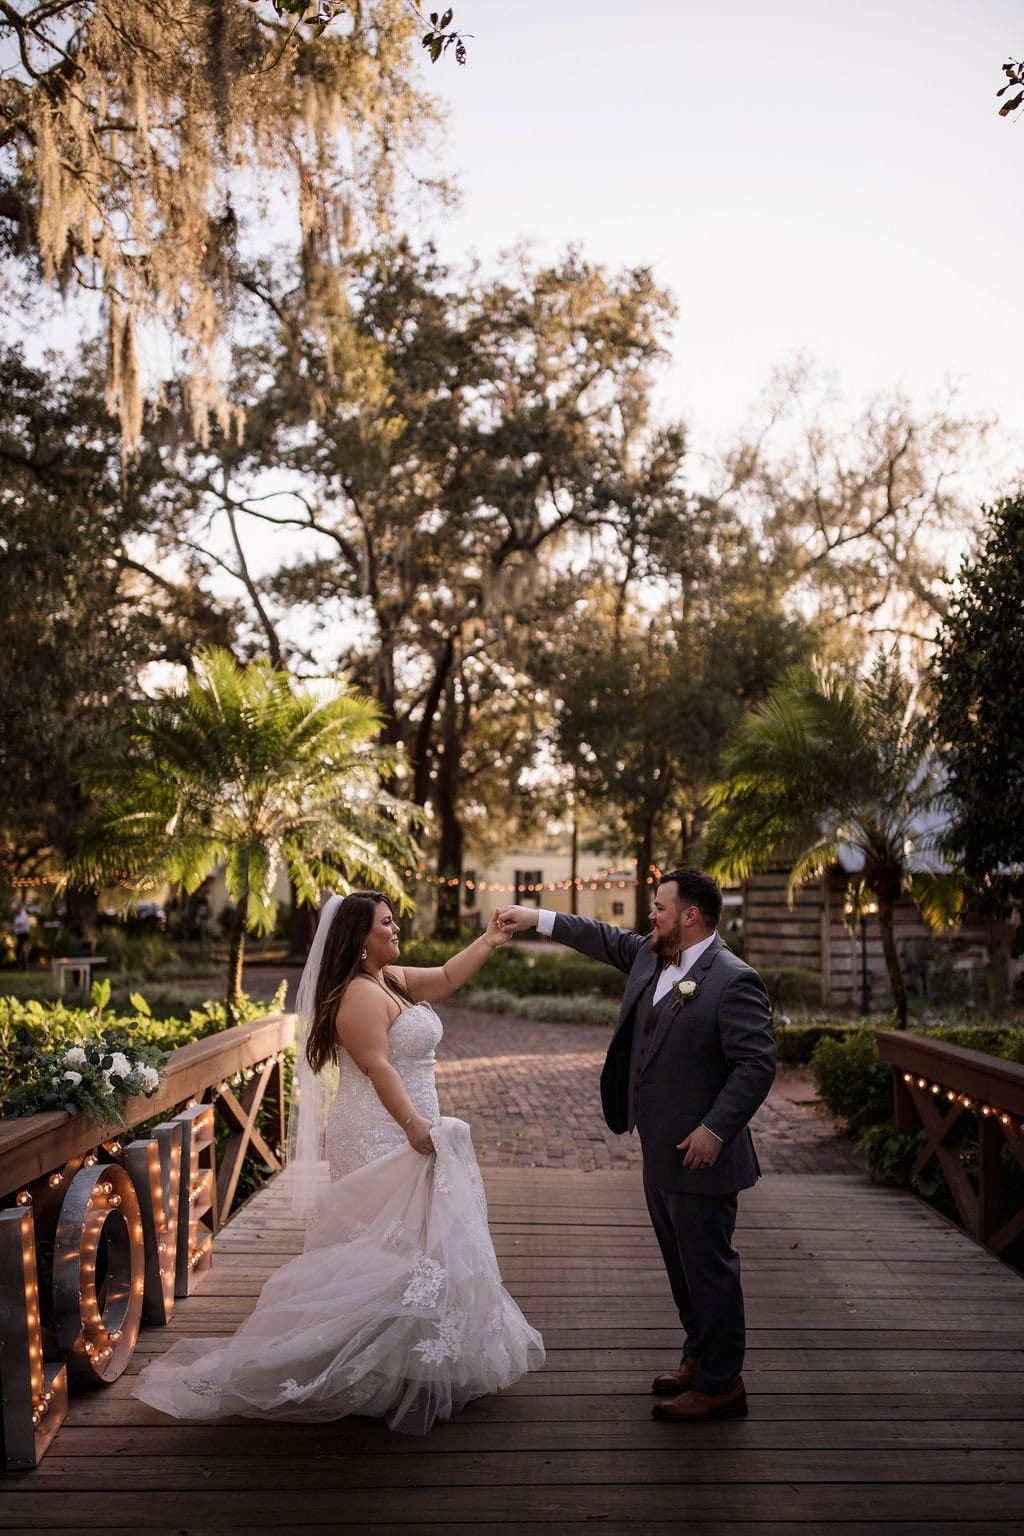 Taryn + Zach's Charcoal and Gold Winter Wedding